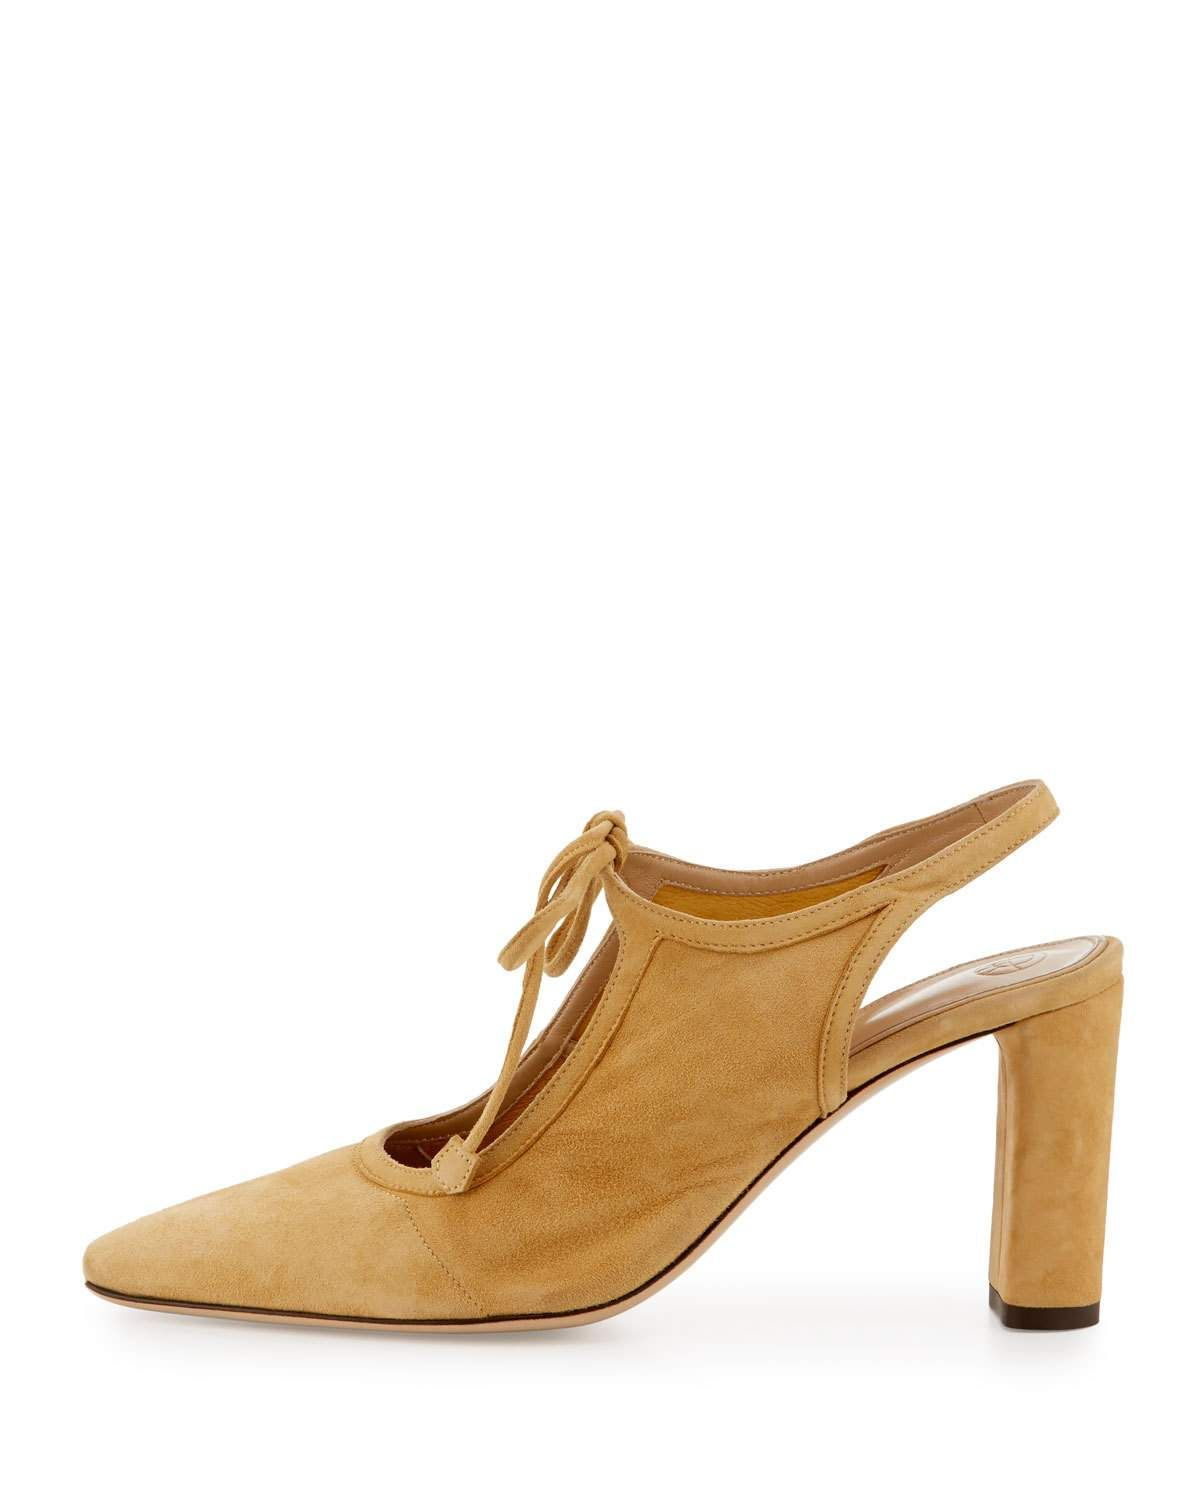 b4e98424be THE ROW Camil Suede Tie-Front Pump | Products | Shoes, Pump shoes ...